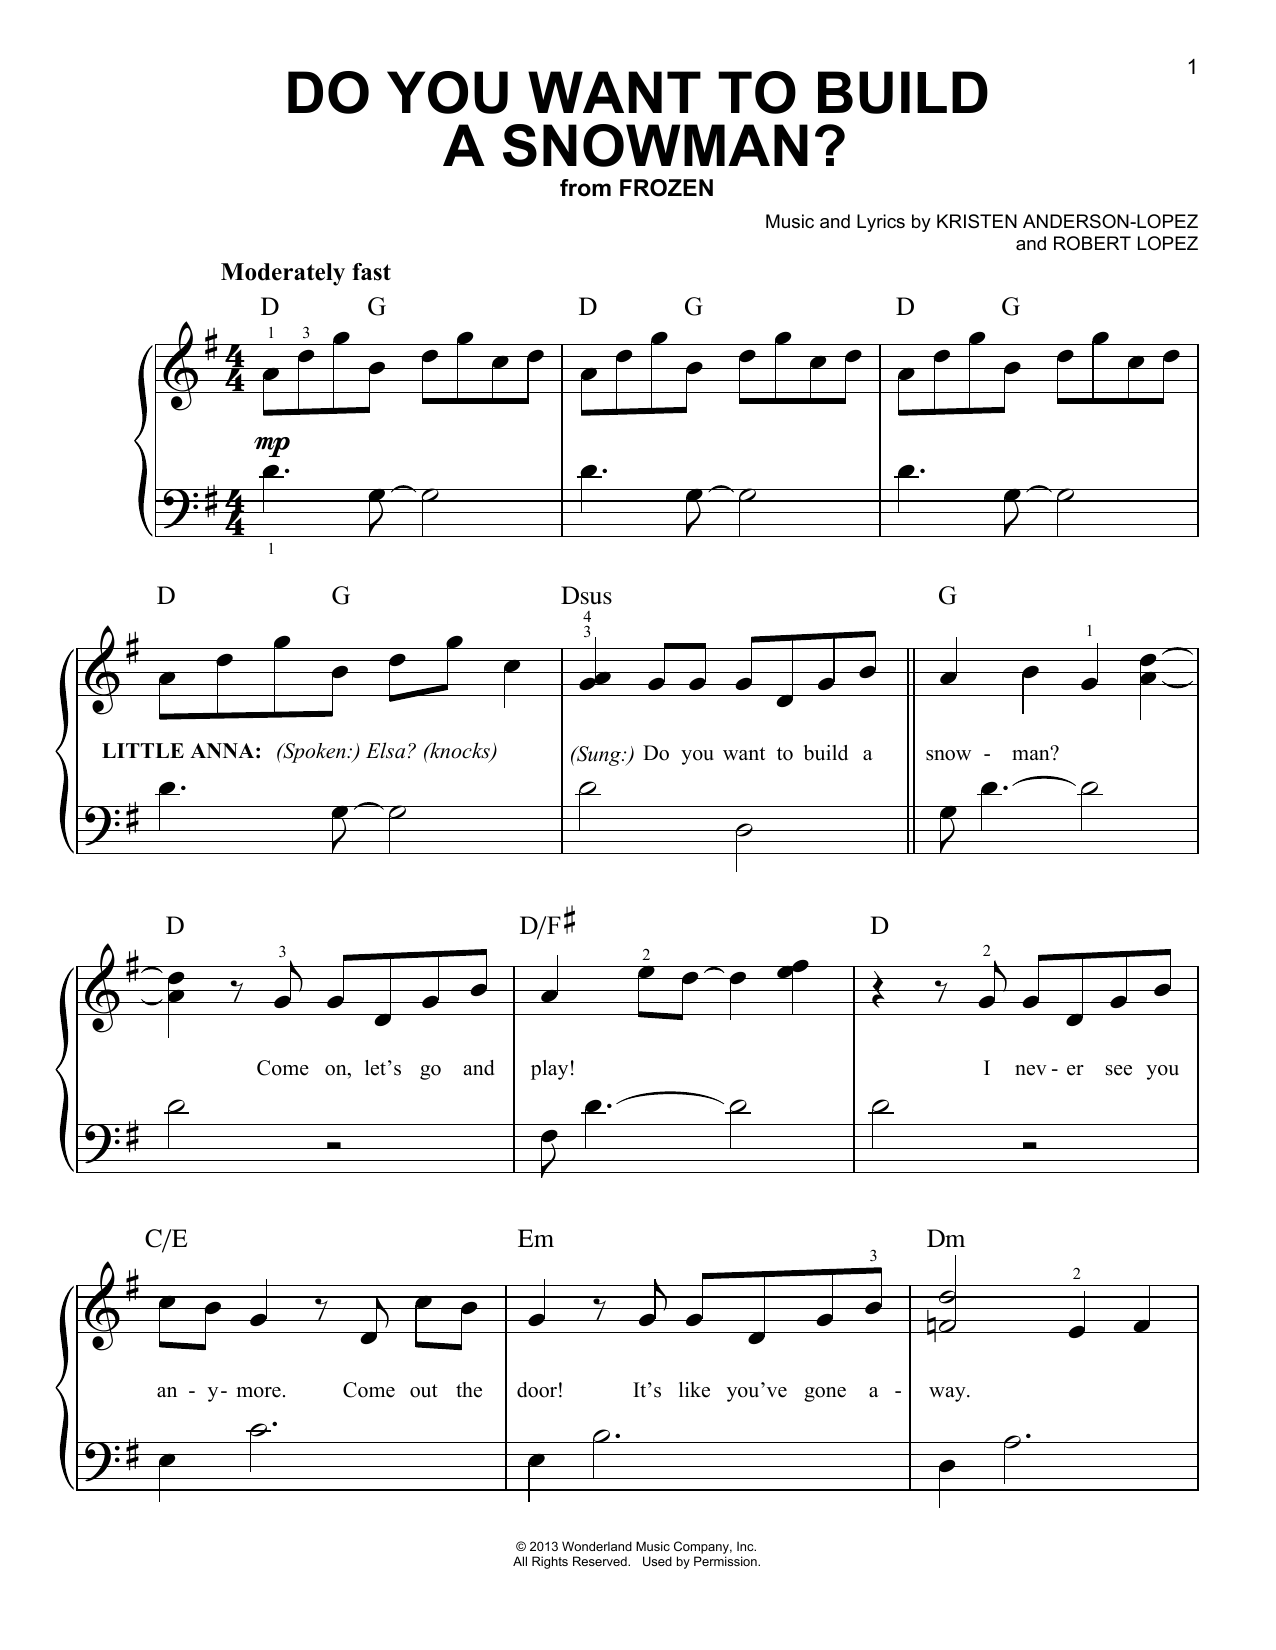 Sheet Music Digital Files To Print Licensed Robert Lopez Digital